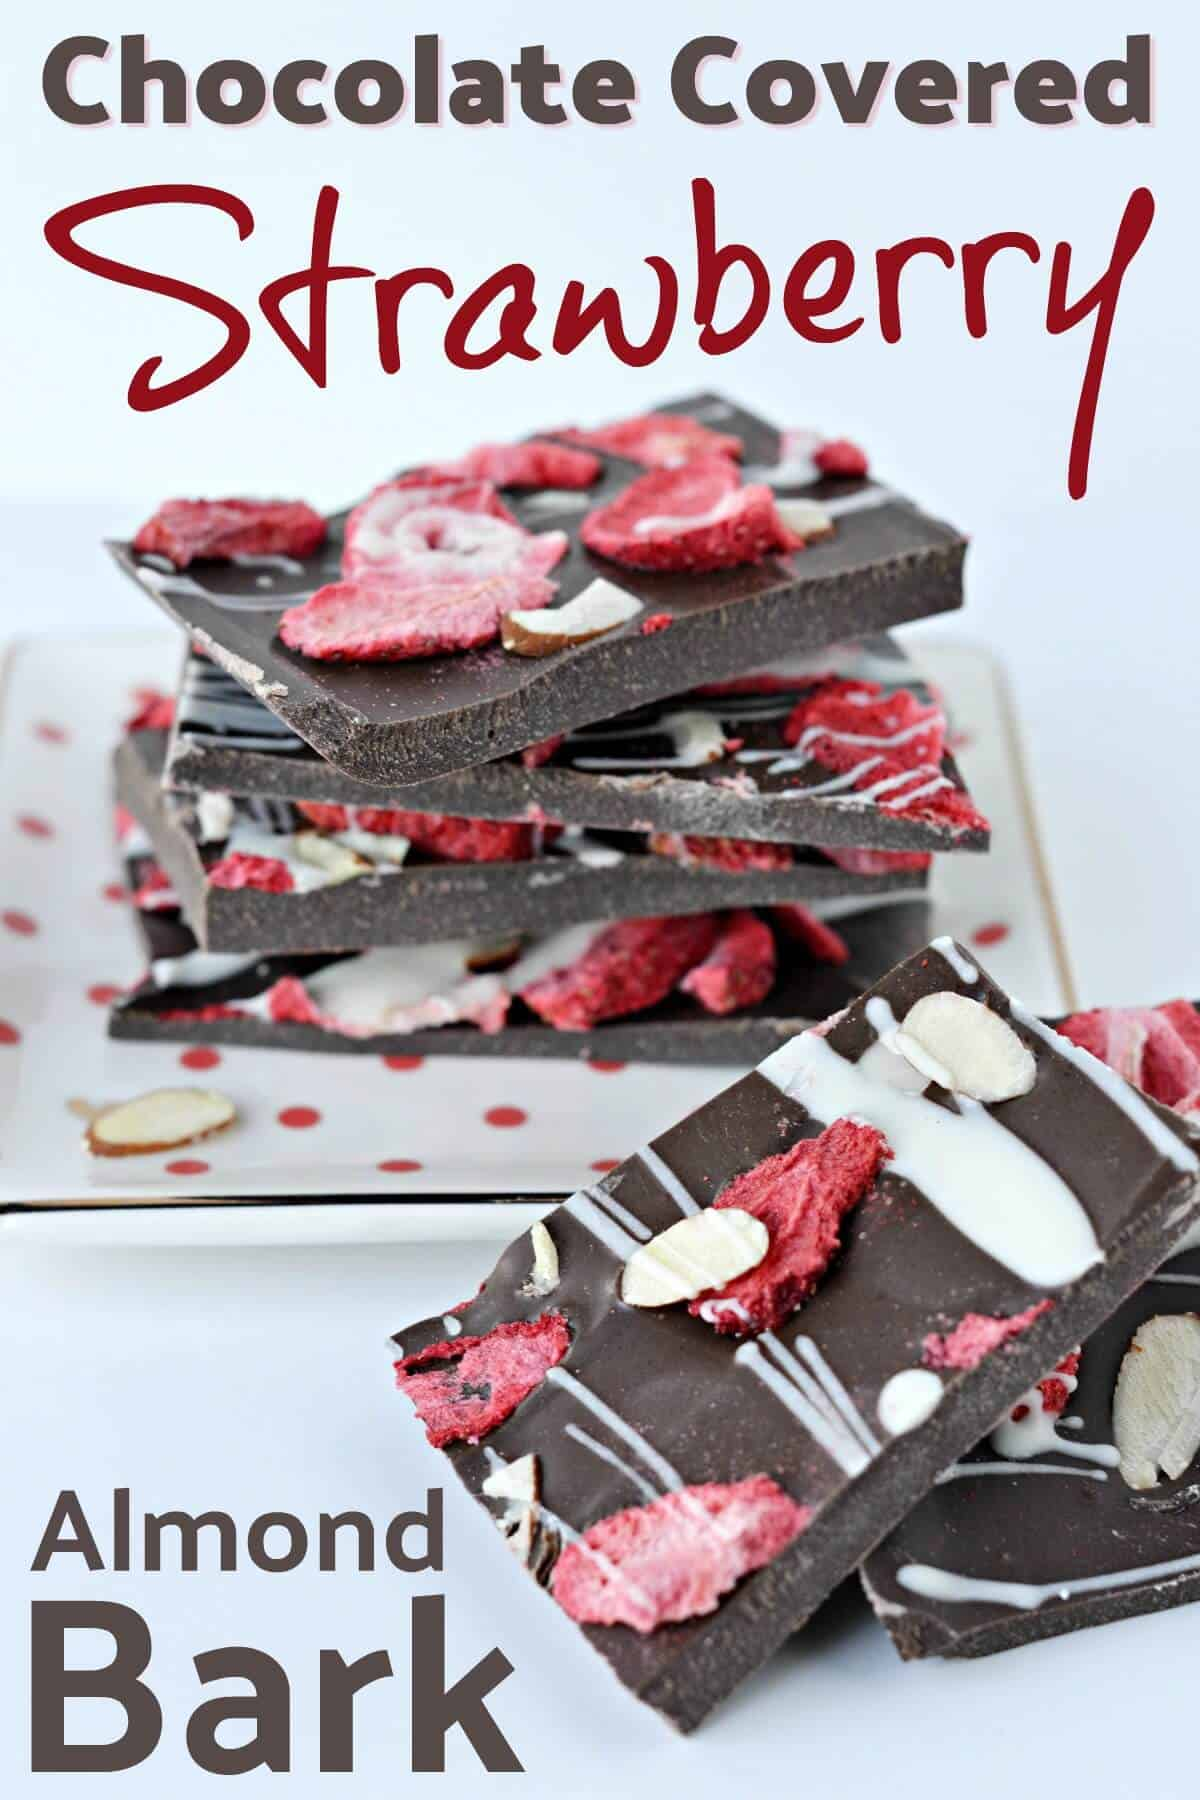 Chocolate Covered Strawberry Almond Bark Recipe